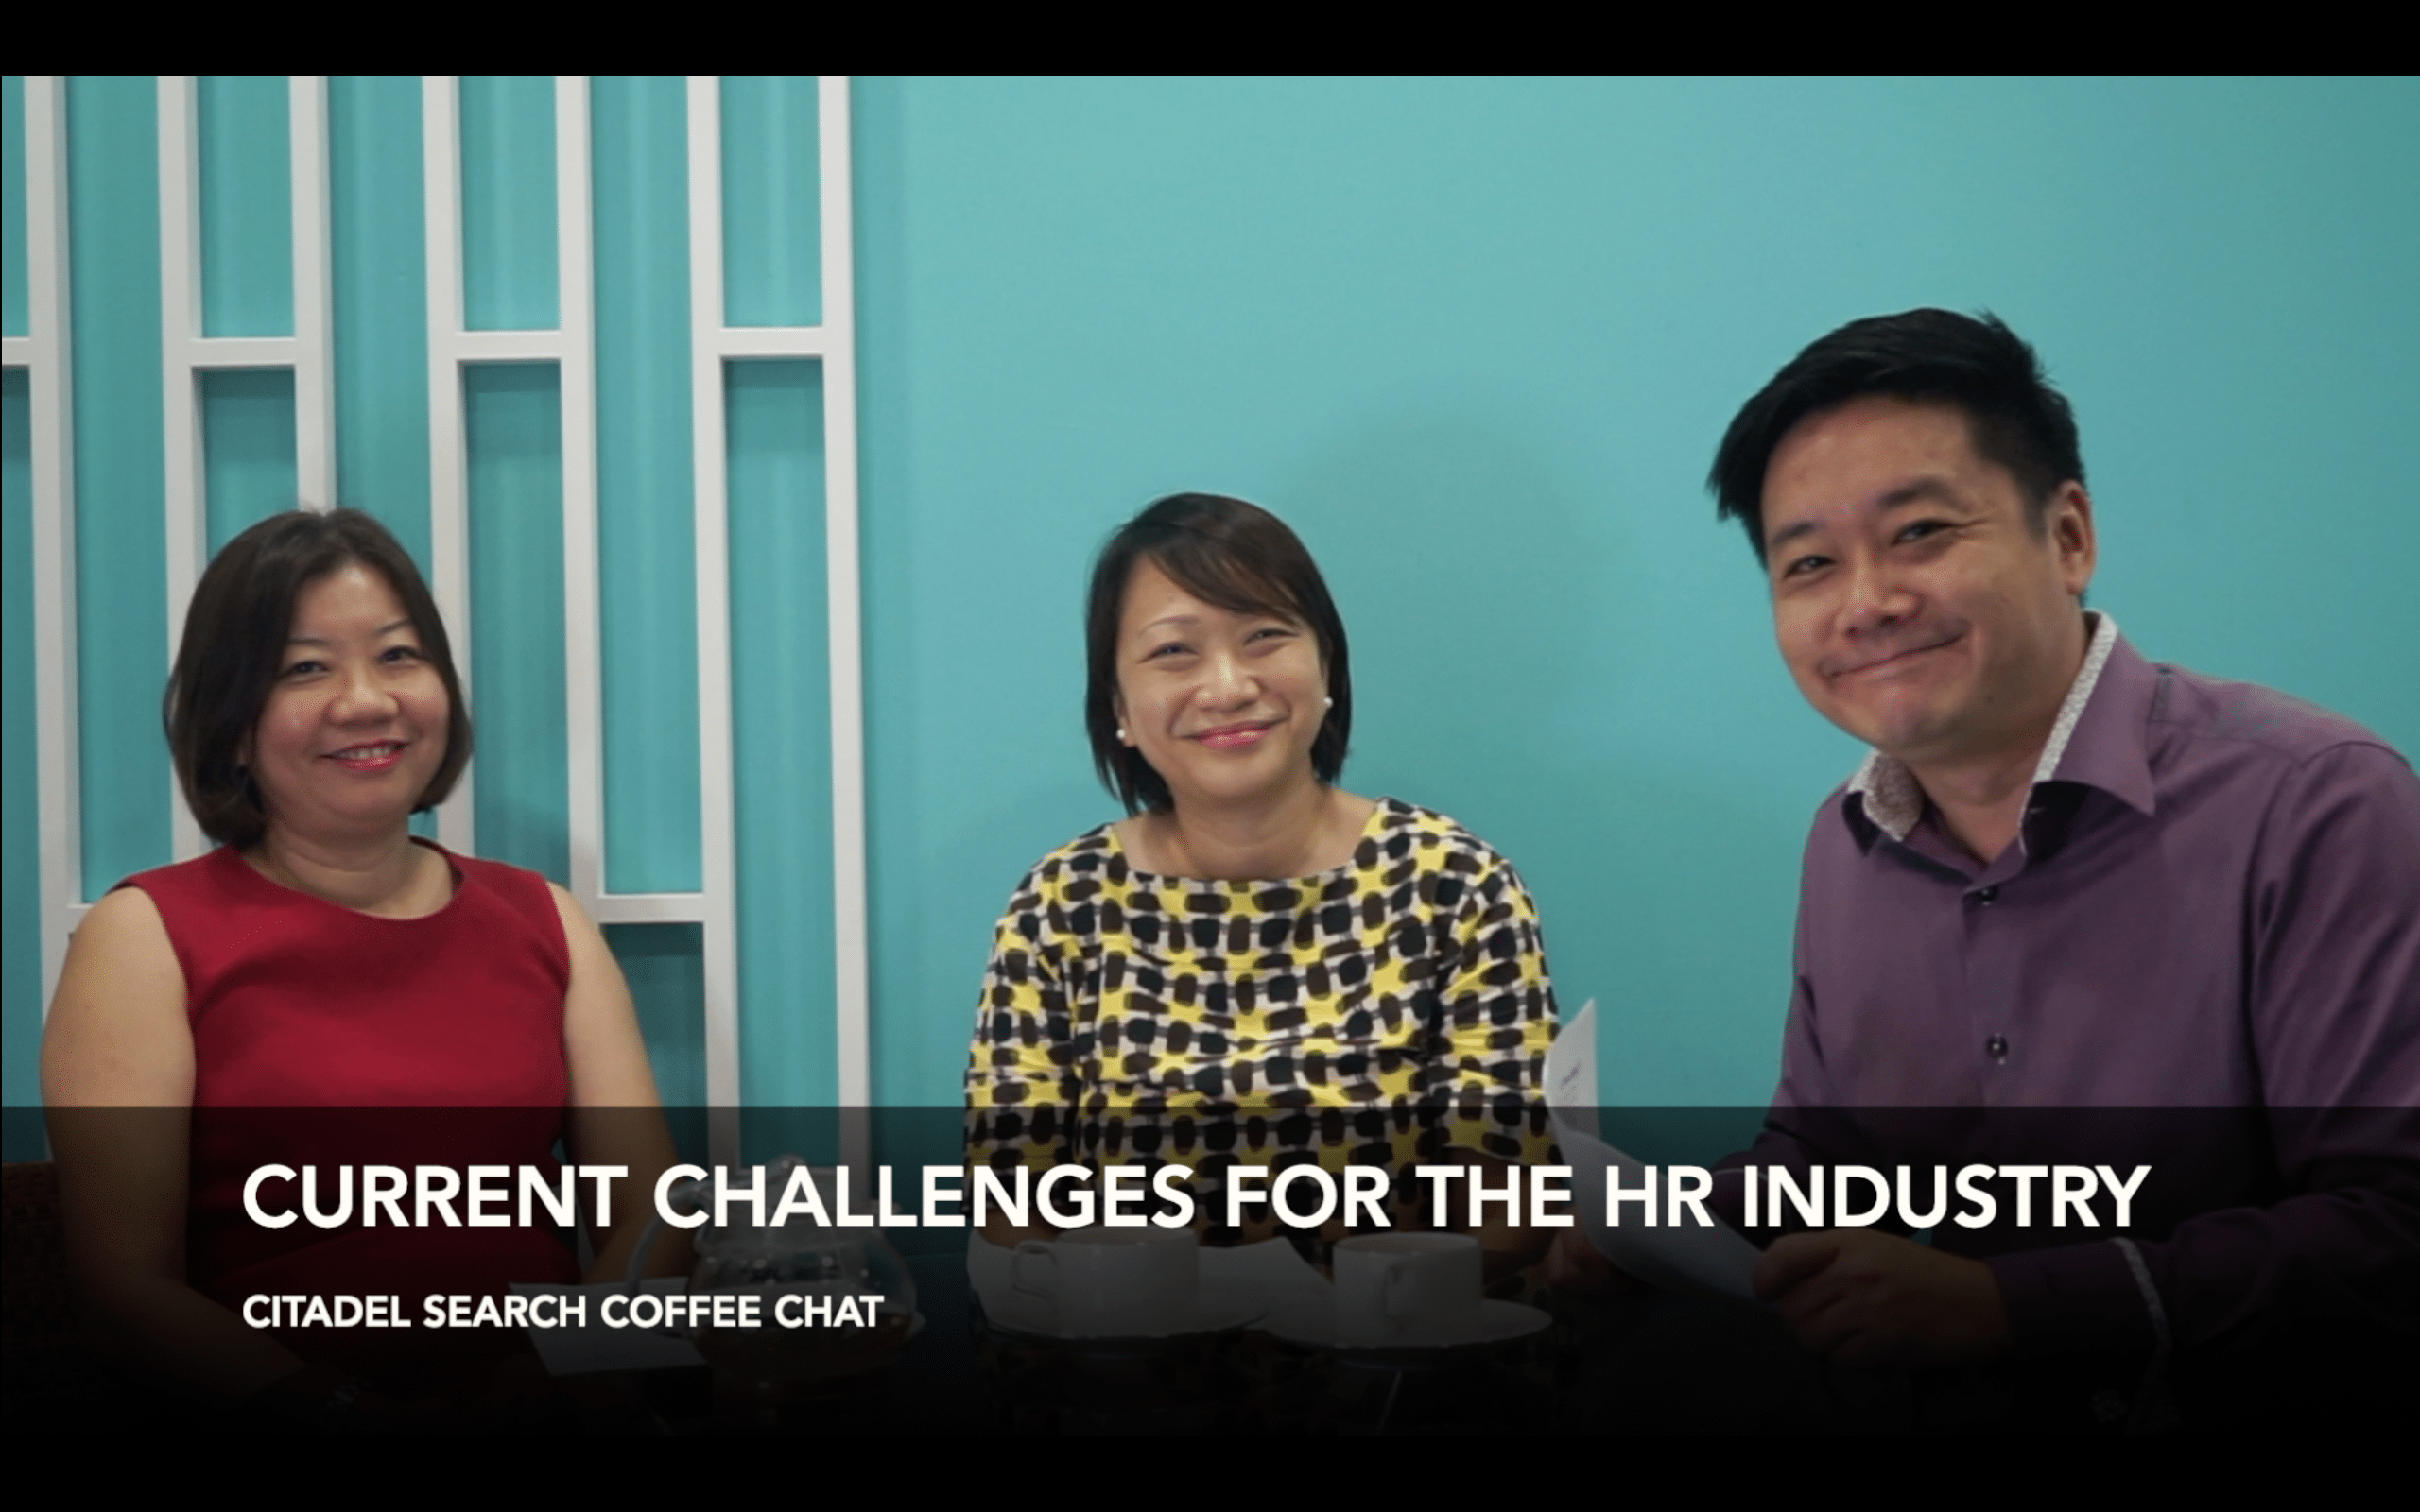 Citadel Search Coffee Chat – Current Challenges for the HR Industry